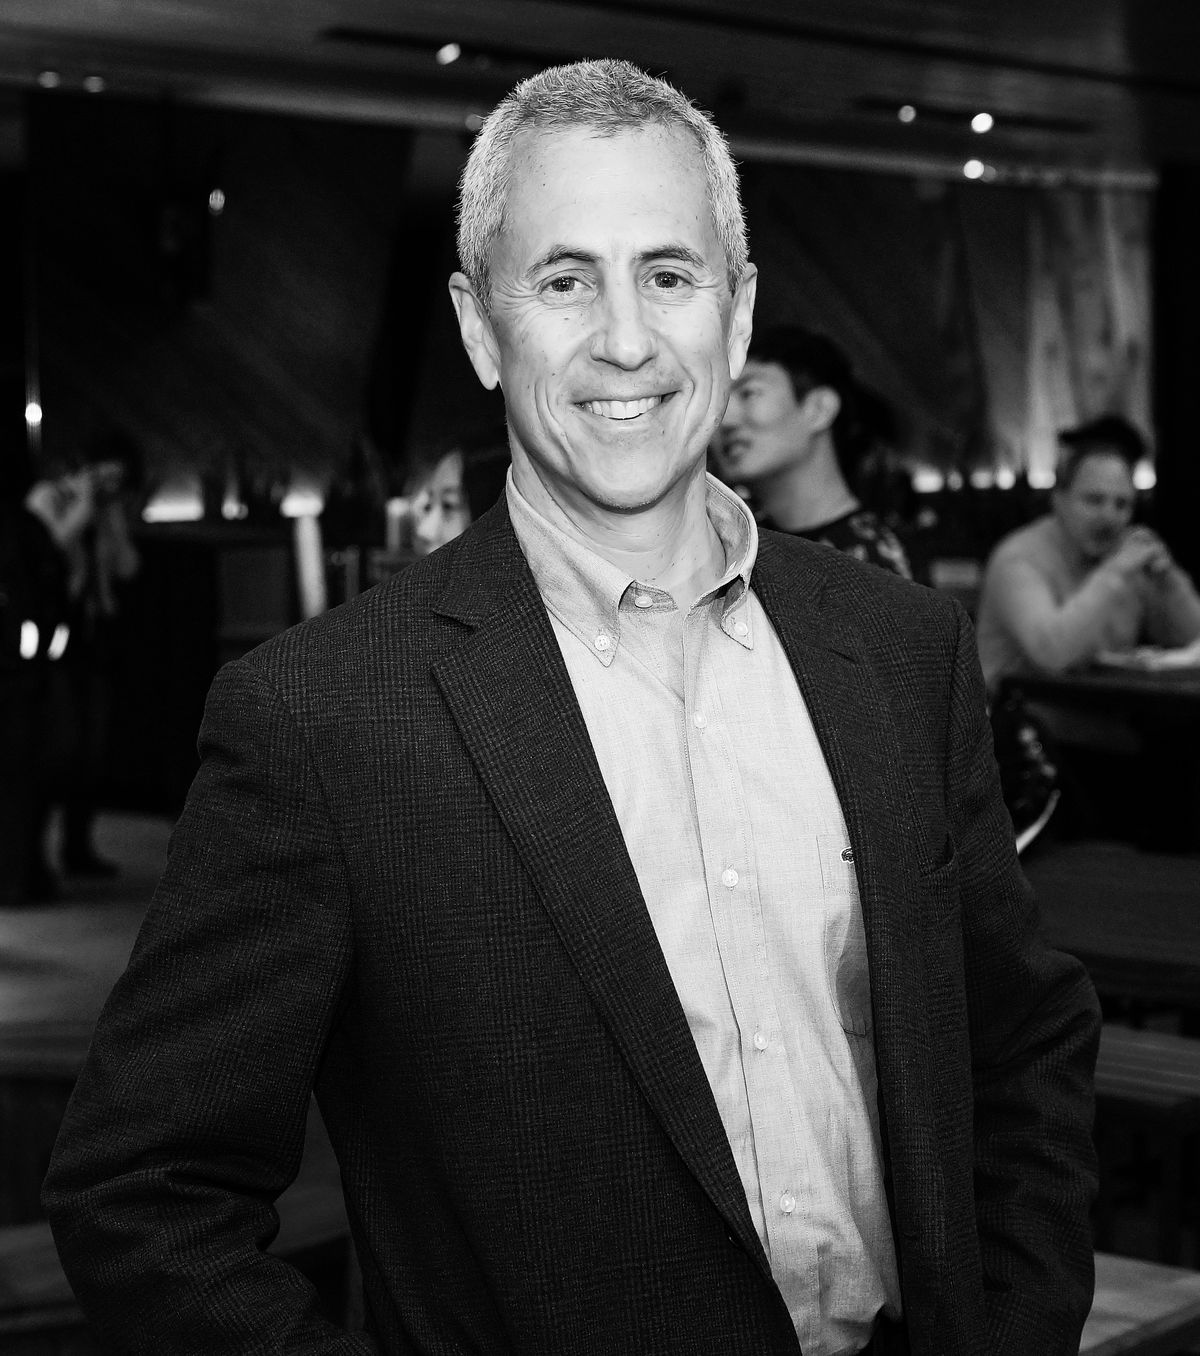 Danny Meyer Is Eliminating All Tipping At His Restaurants